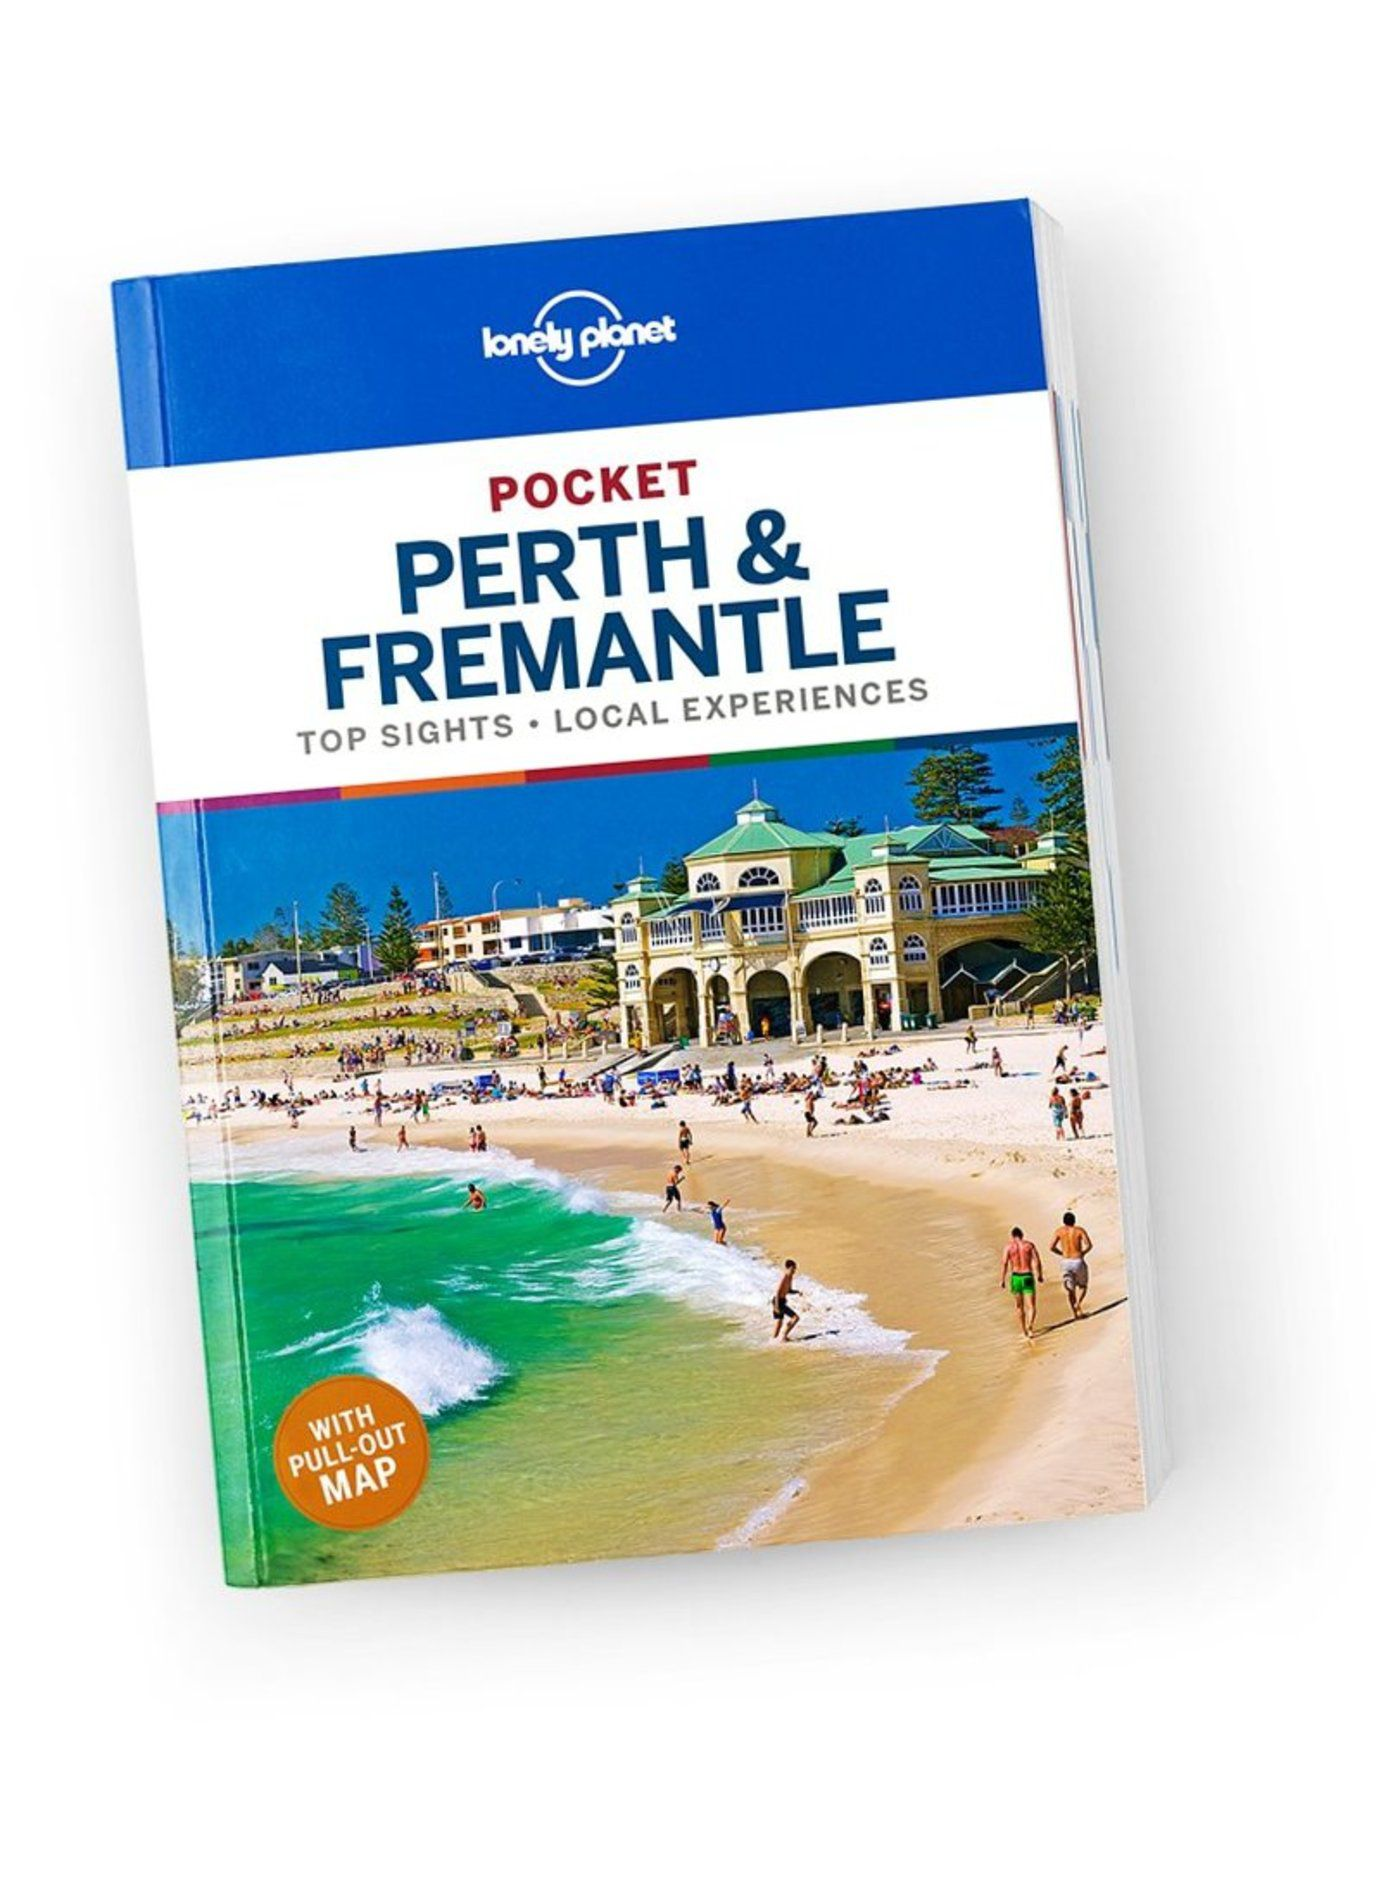 Pocket Perth & Fremantle